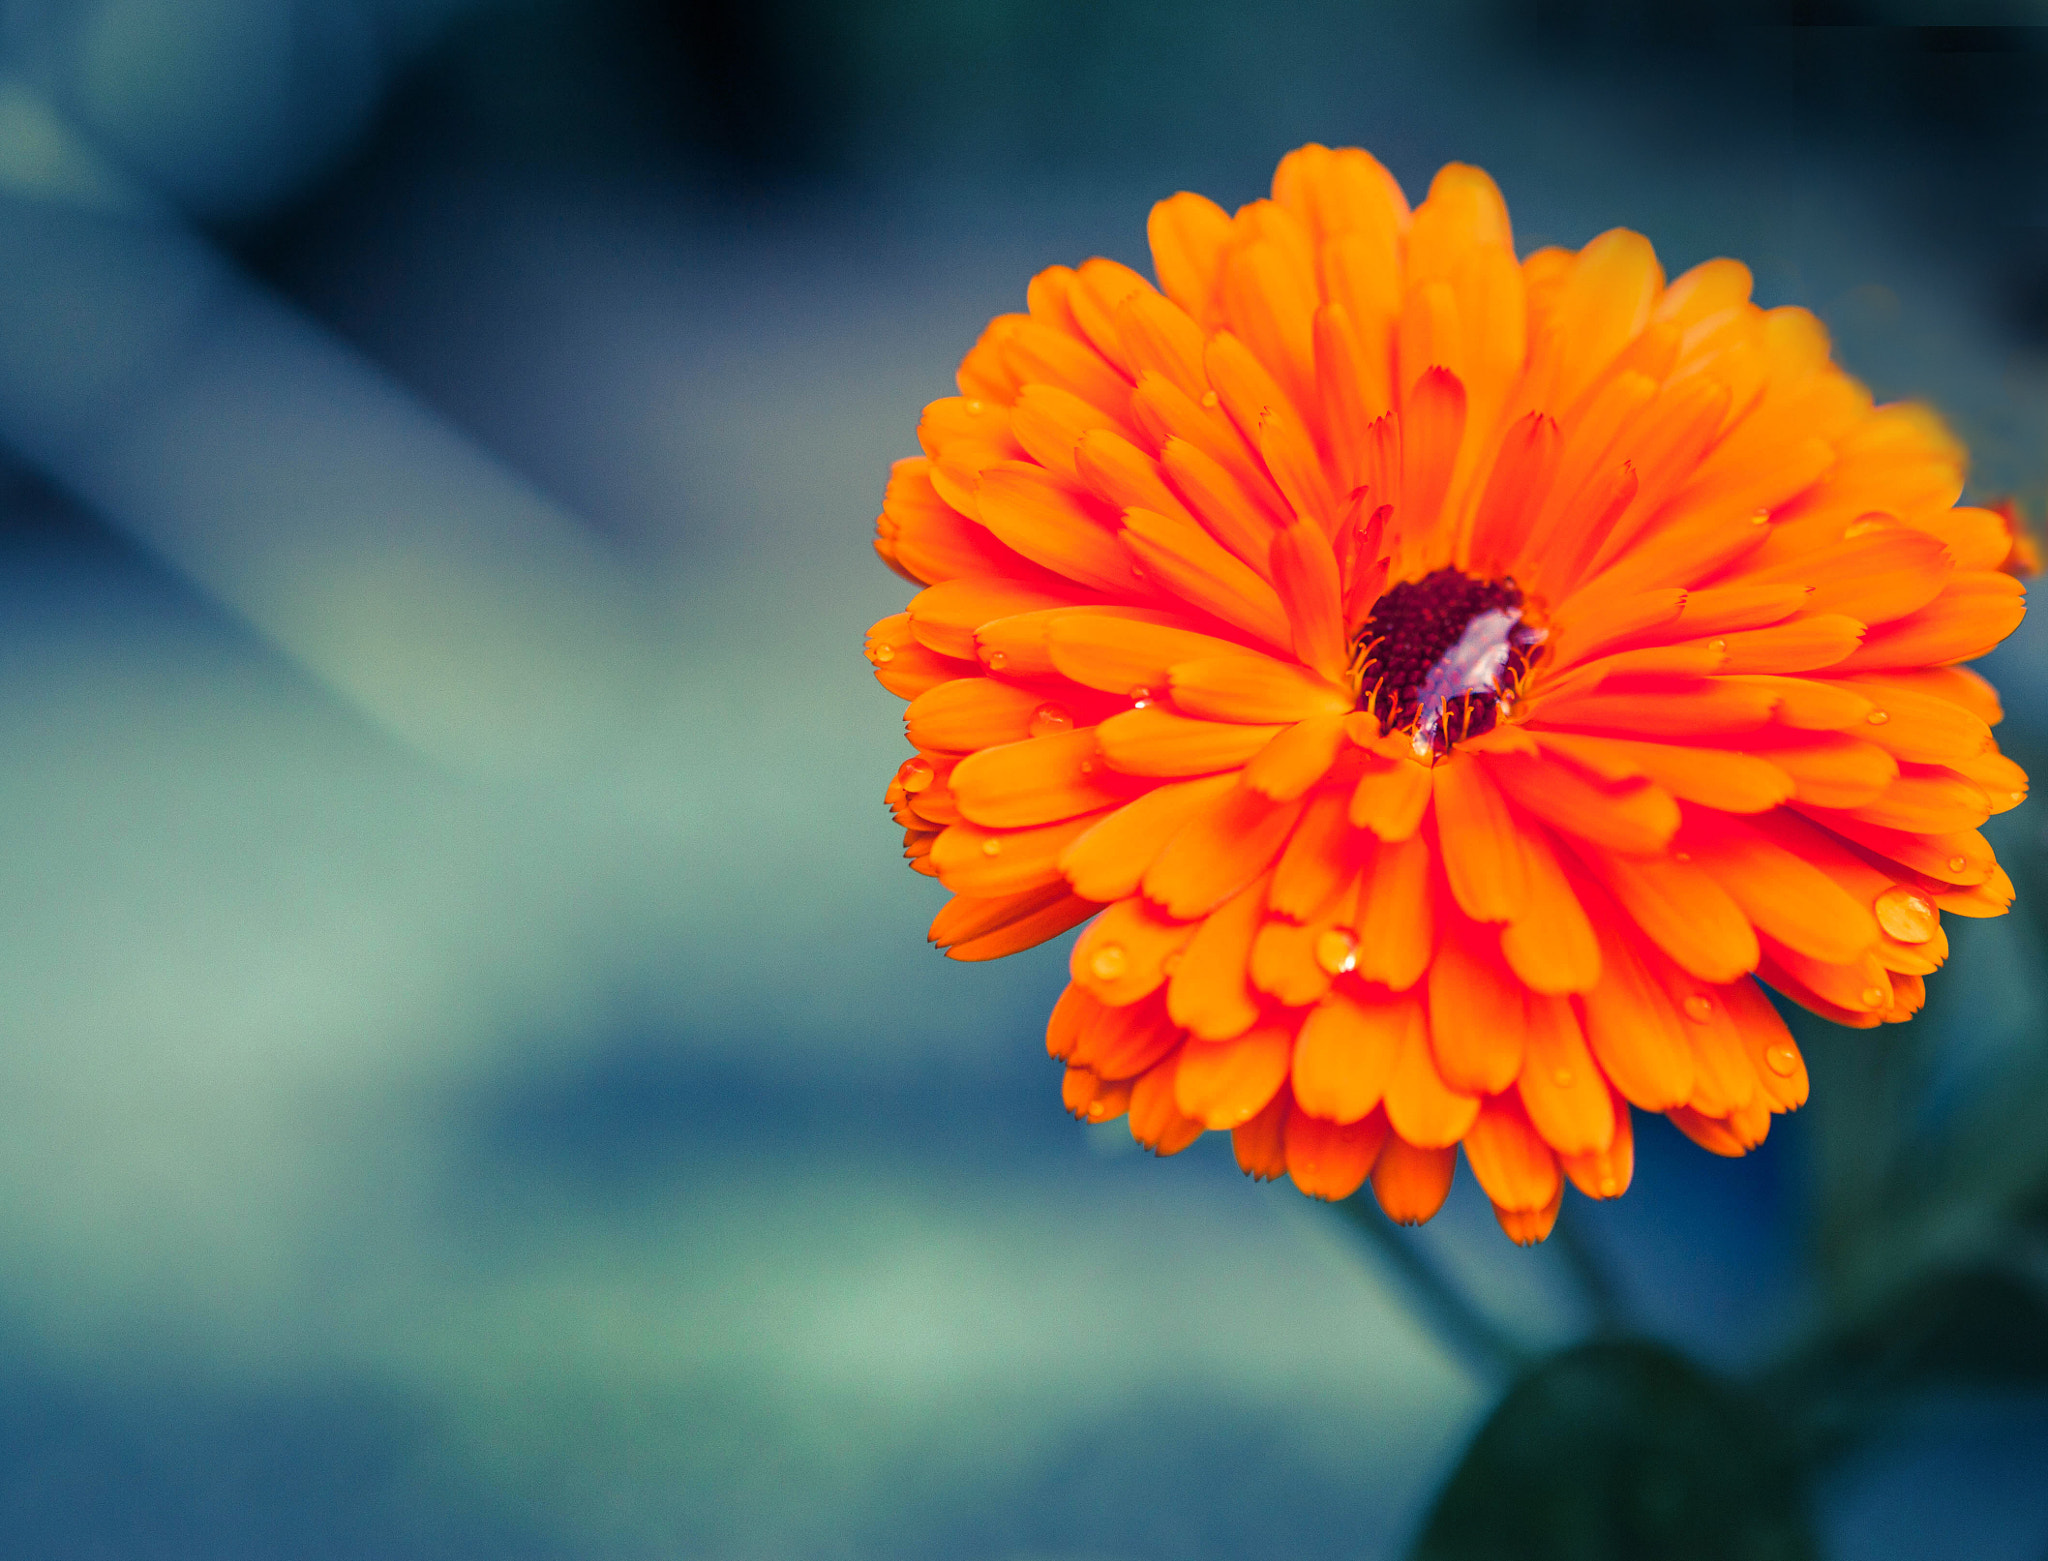 Photograph Orange Flower by Sheryl Tait on 500px